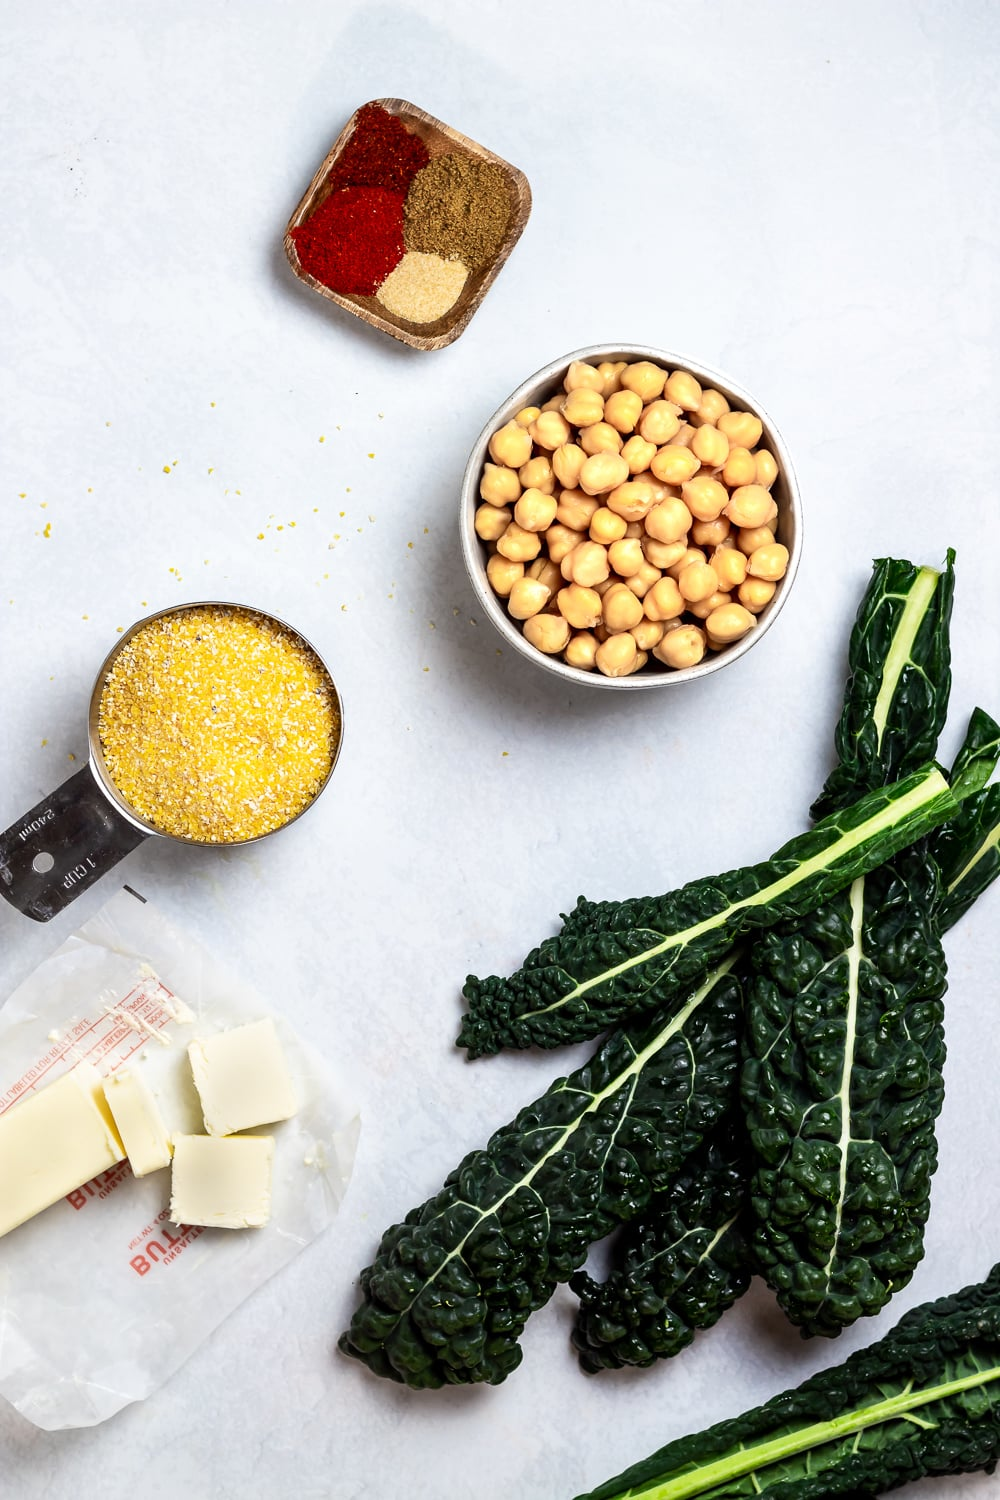 kale, uncooked polenta in a measuring cup, butter cut into pats, chickpeas, and assorted spices on a light grey background